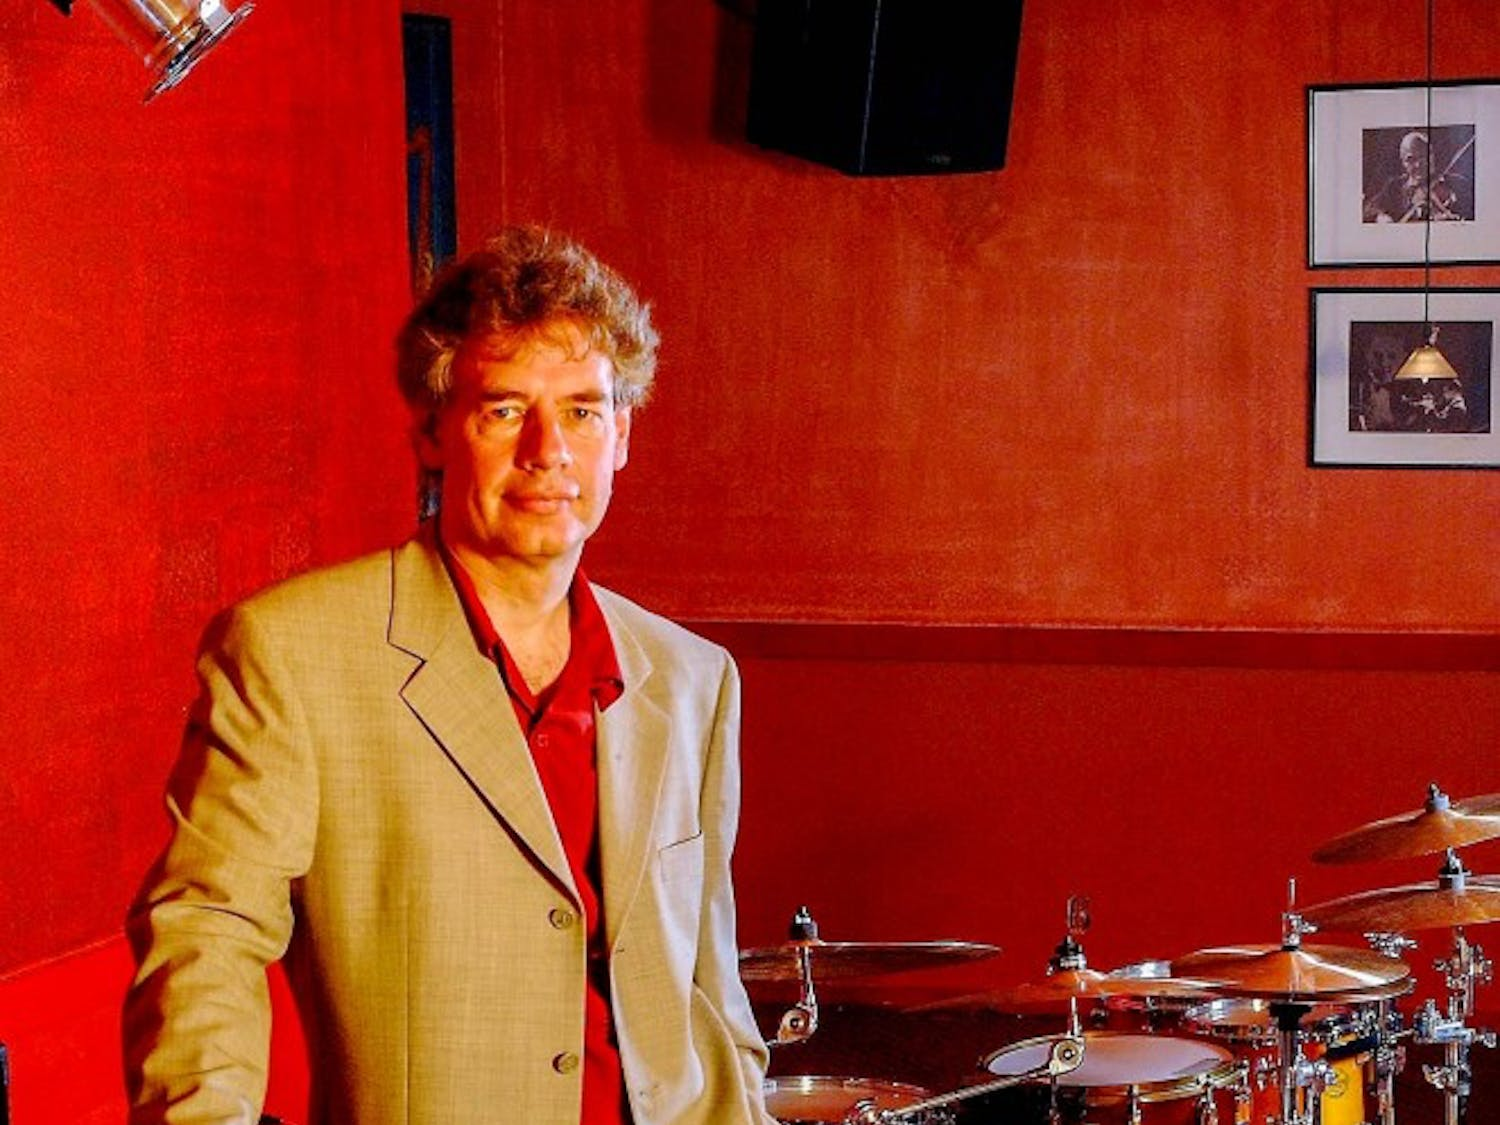 """Former Yes and King Crimson drummer Bill Bruford spoke with The Spectrum on Monday ahead of his lecture series in support of his second book, """"Uncharted: Creativity and the Expert Drummer."""""""